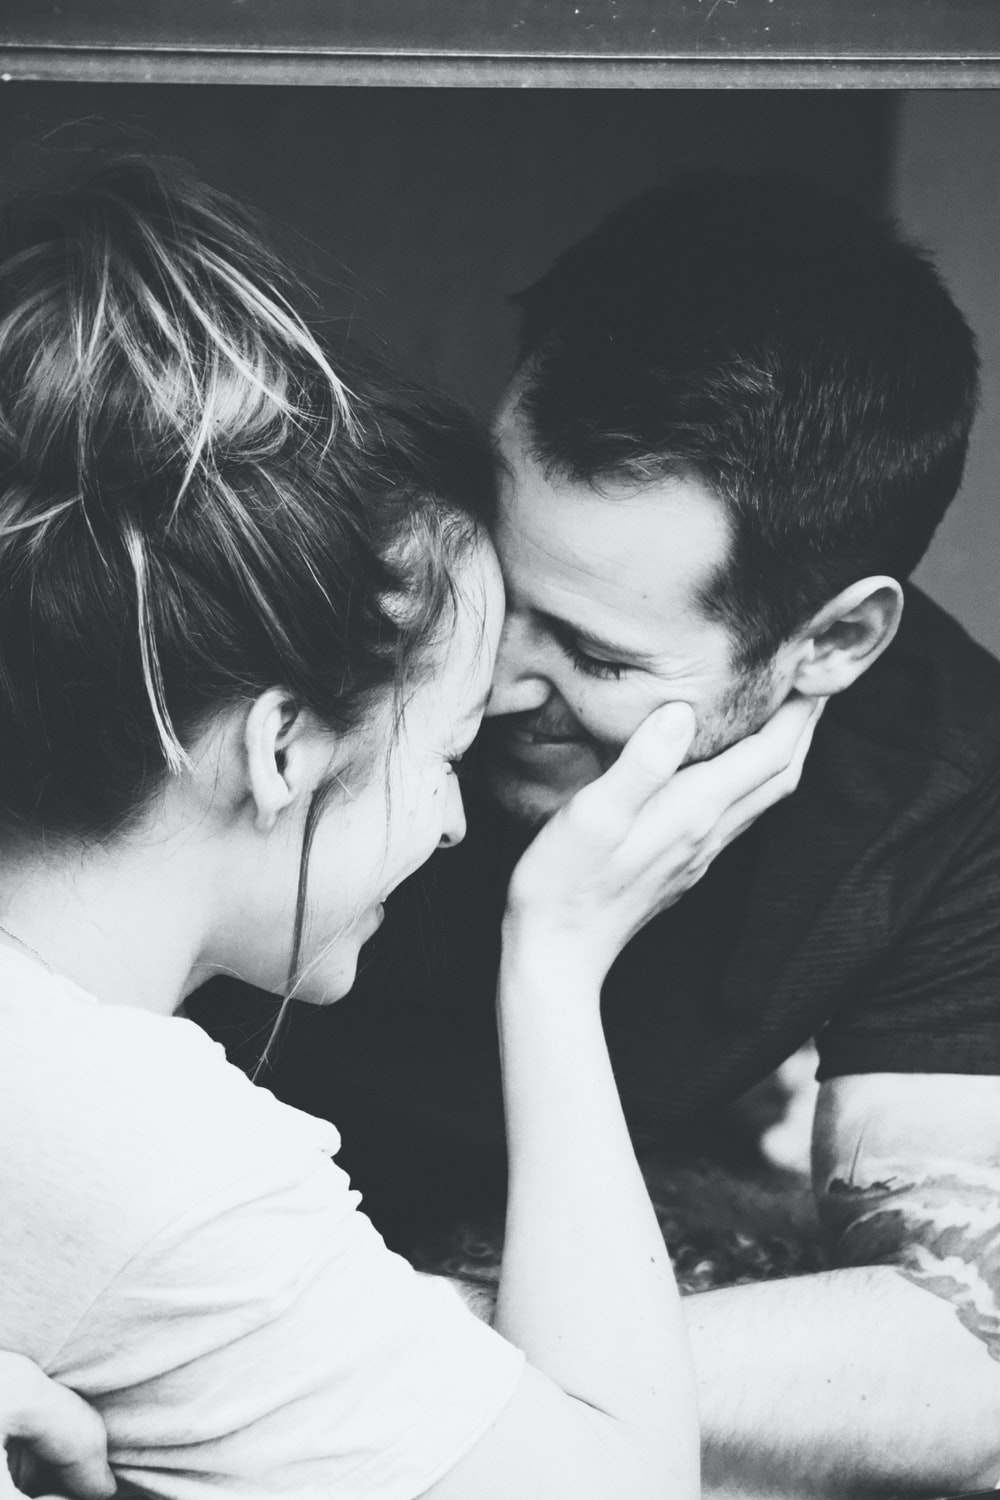 grayscale photography of woman holding man's face